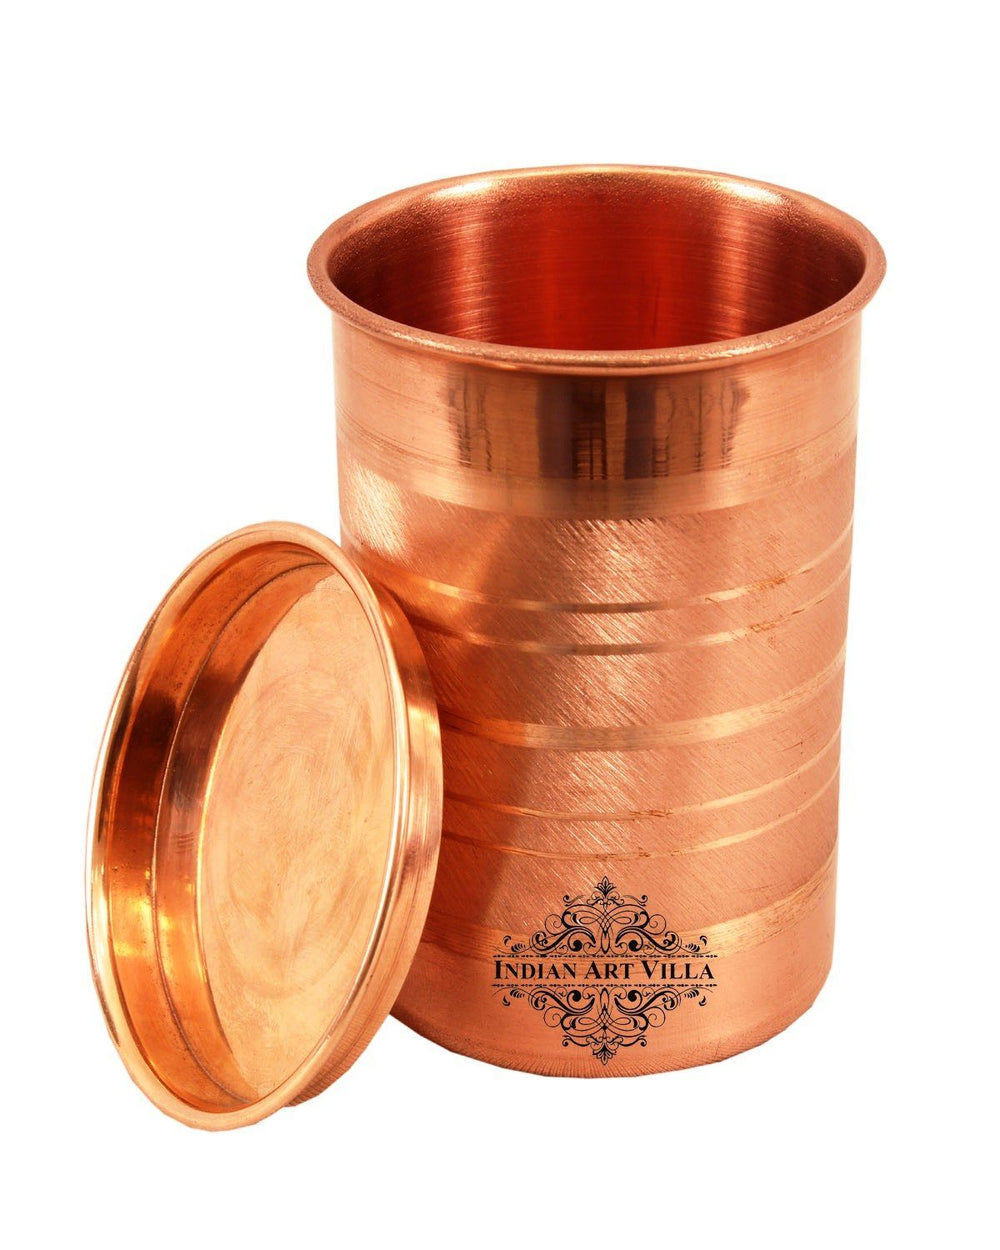 Copper Luxury Design Glass With Lid Set of - 1 Pieces | 2 Pieces | 4 Pieces | 6 Pieces Copper Tumblers CC-1